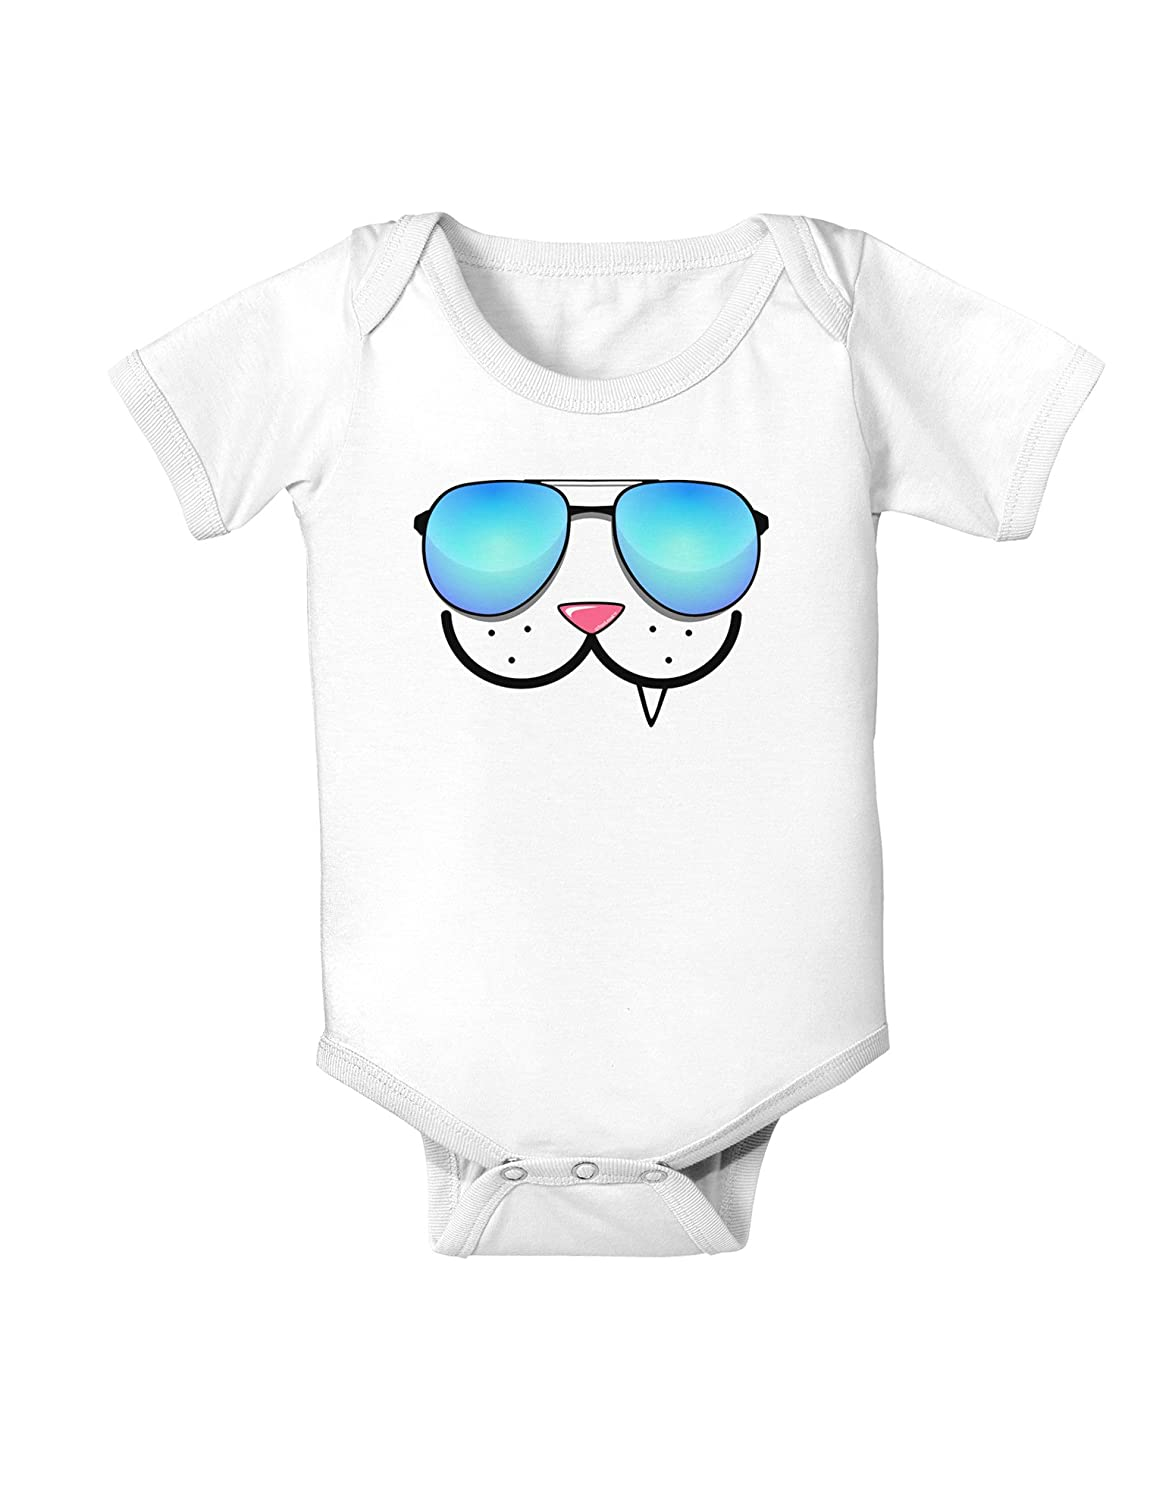 TooLoud Kyu-T Face Snaggle Cool Sunglasses Infant One Piece Bodysuit